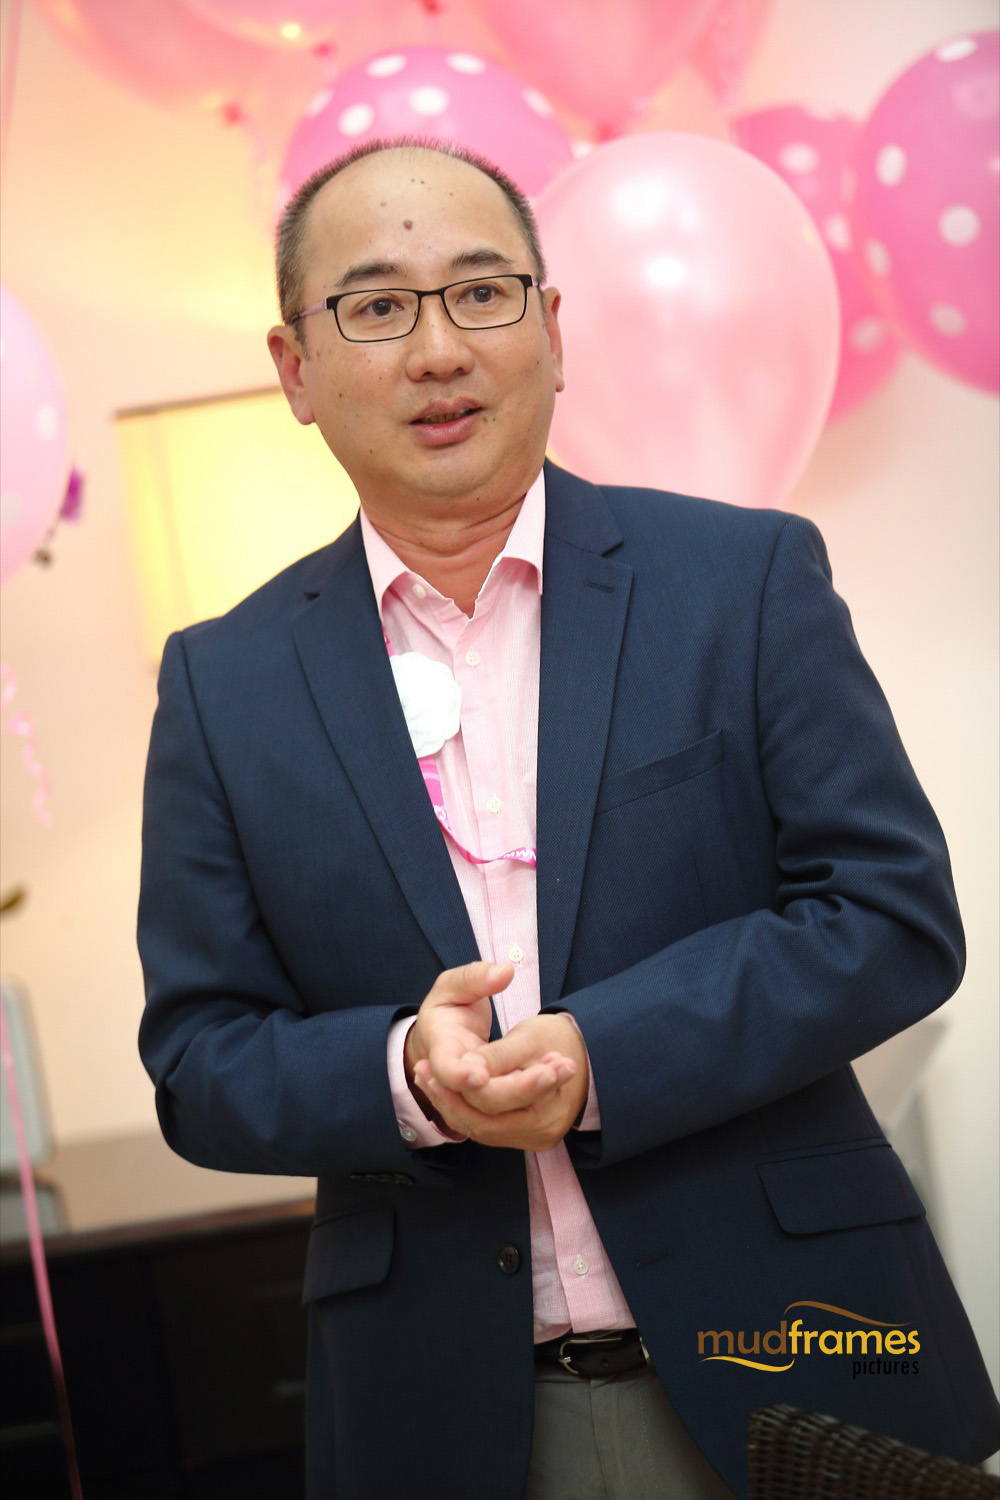 Chris Tan at MSD's Merck Women's Network event